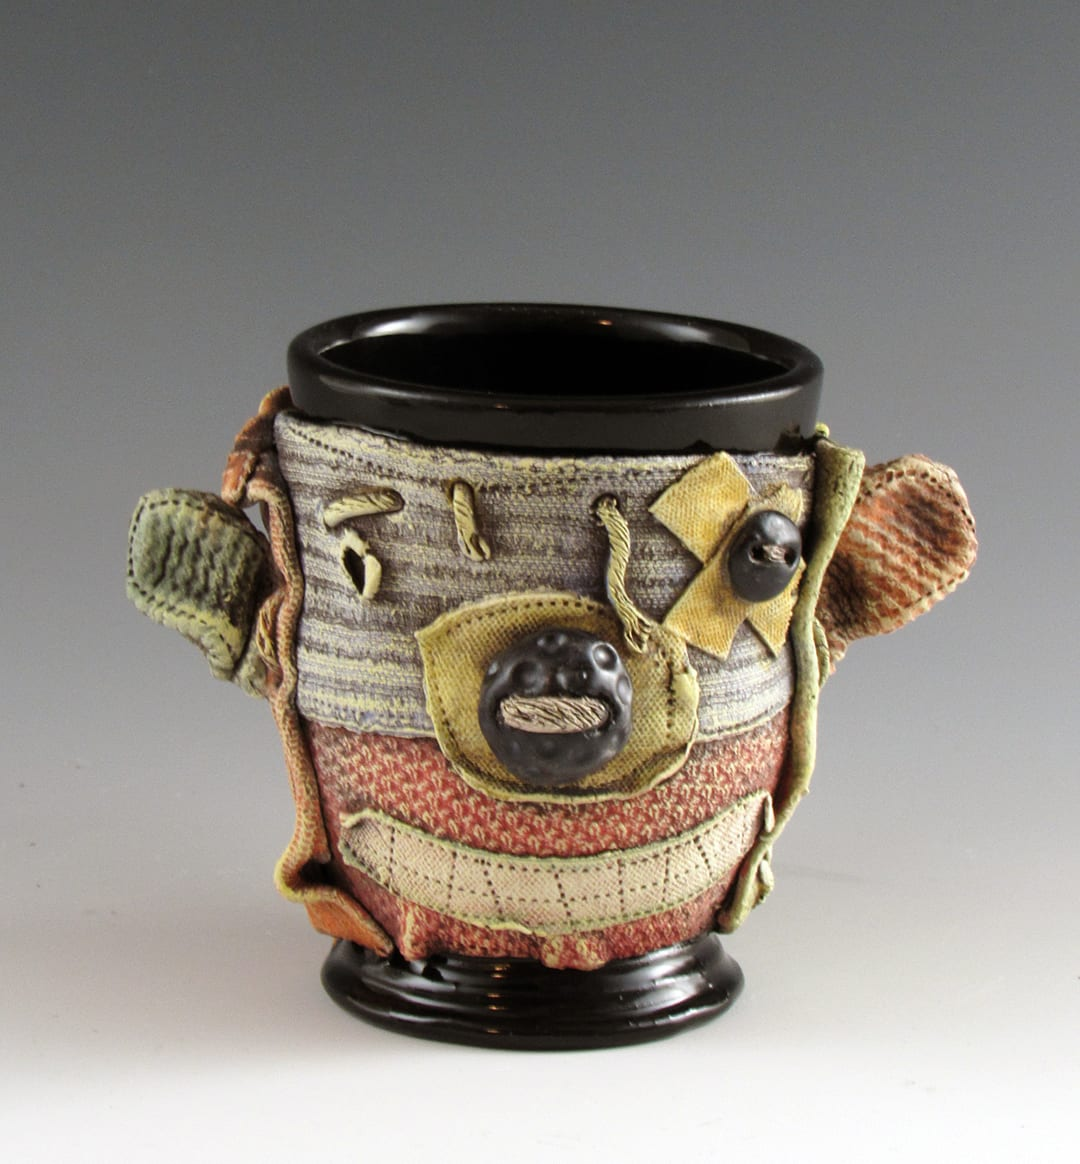 Keith Schneider - 2020 - Wrapped Cup - Ceramic